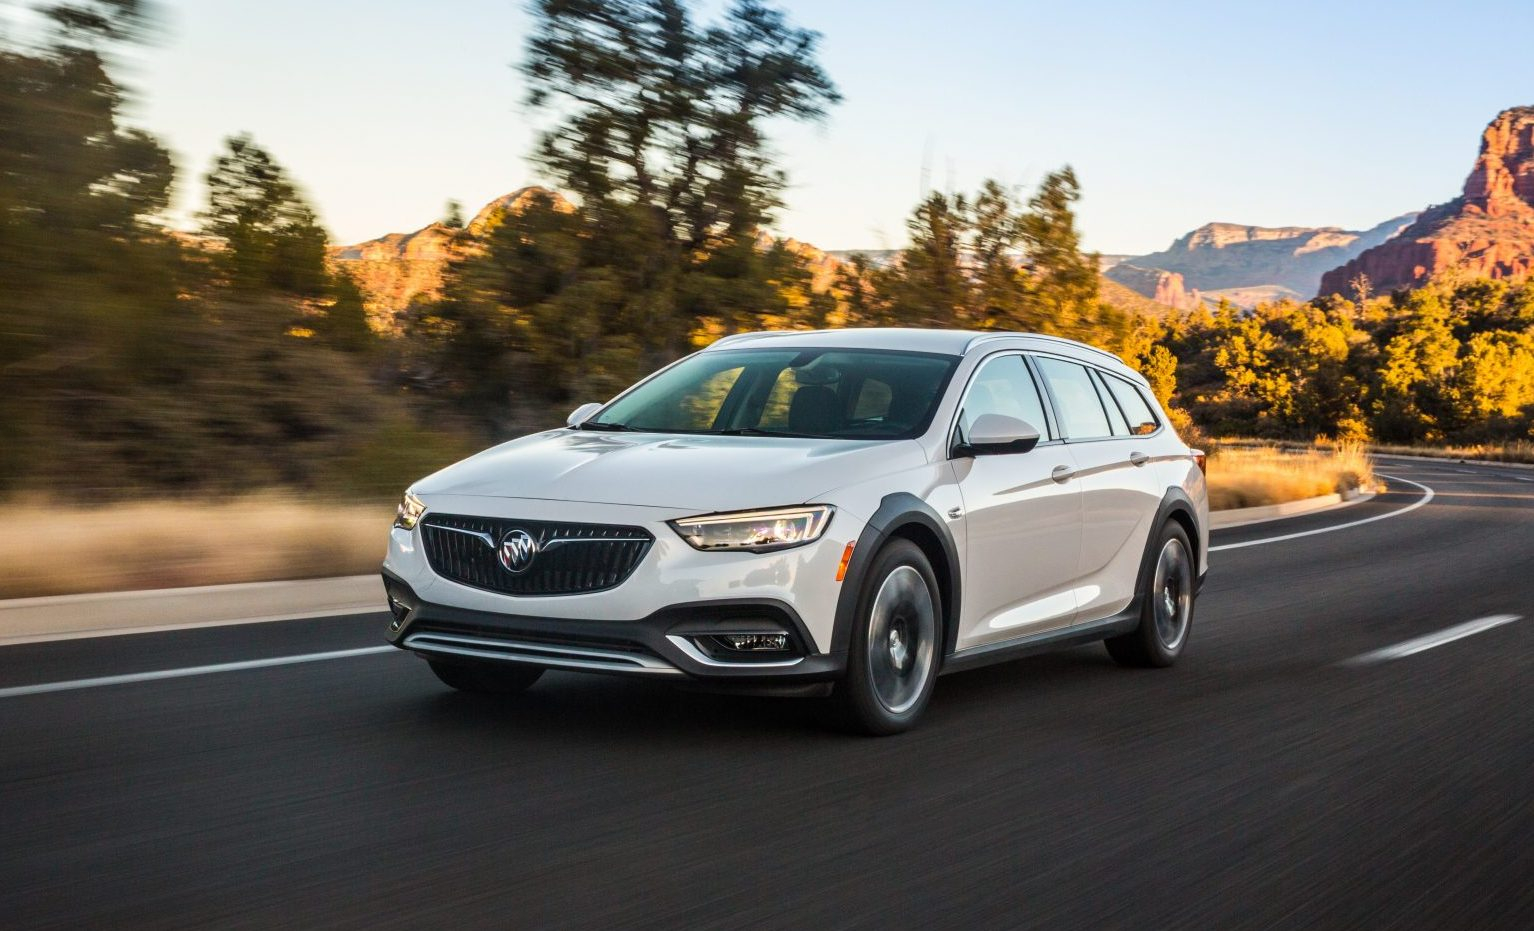 2018 Buick Regal Tourx Second Take: King Of The Wagon 2022 Buick Regal Sportback Configurations, Ground Clearance, Release Date